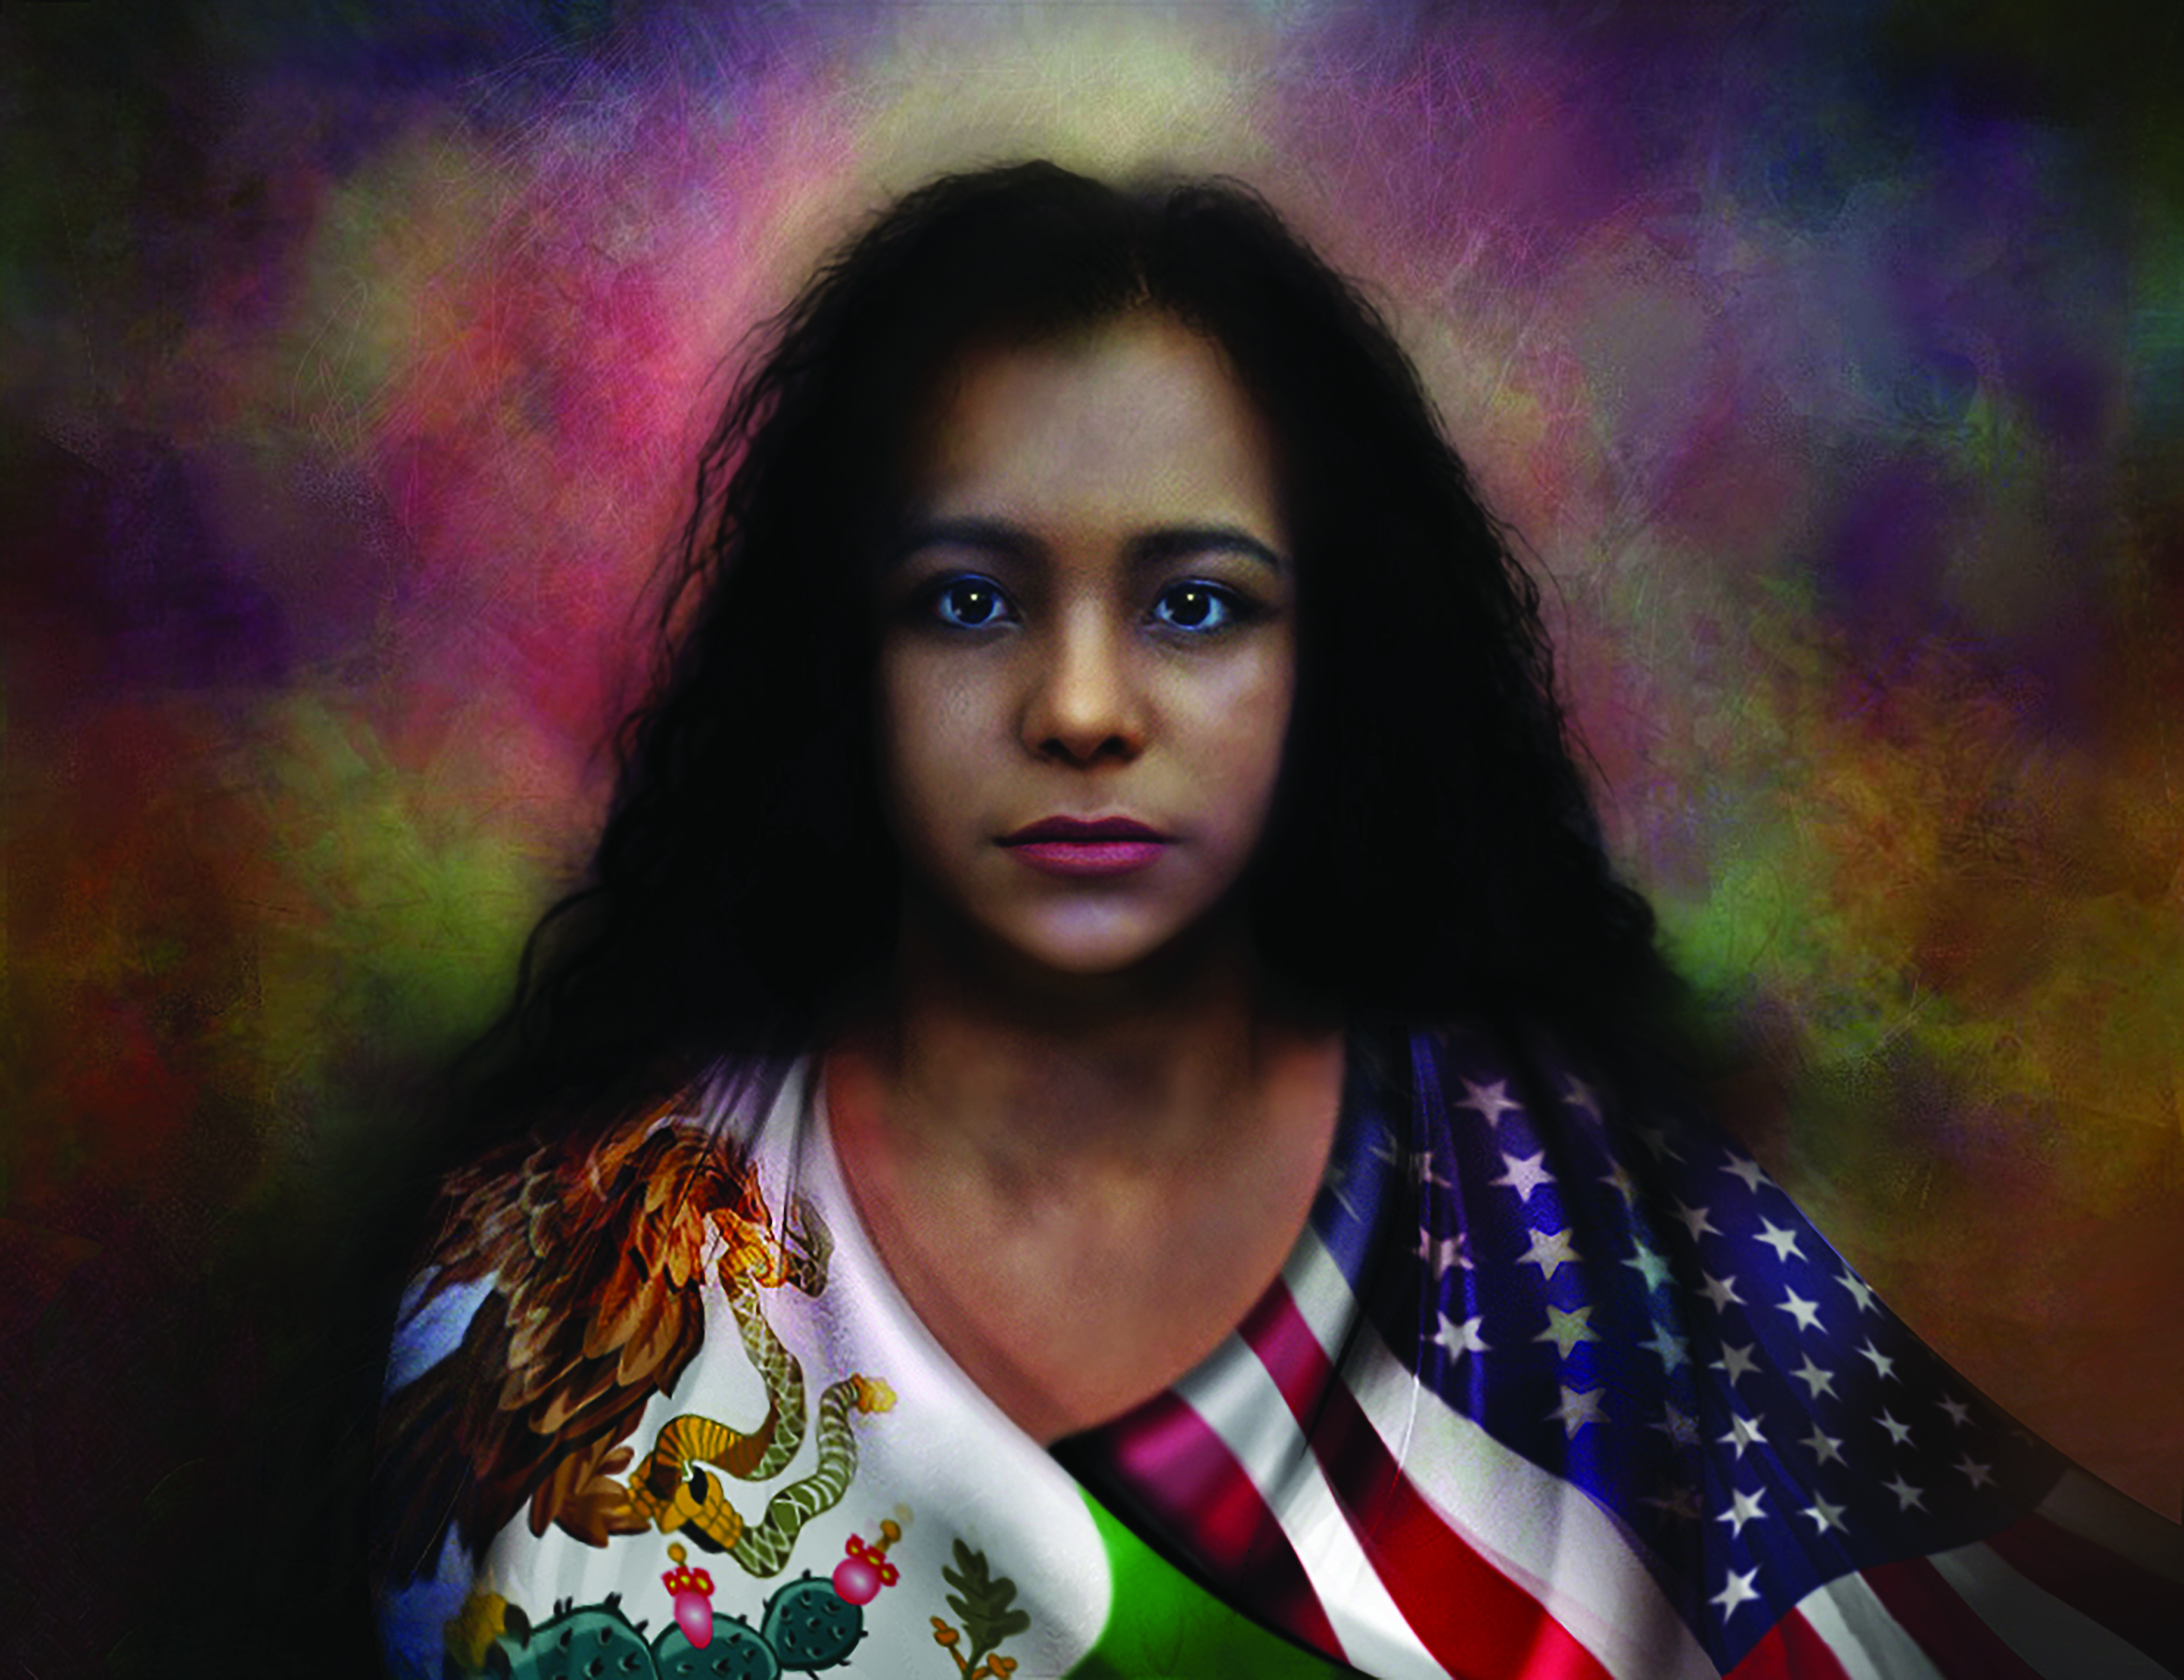 Image of a painting by artist Quintin Gonzalez. Portrayed here is a young Latina girl with long wavy black hair which falls below her shoulders. She looks directly at the viewer with an intense gaze. Around her shoulders are wrapped two flags: over her left shoulder are the stars and stripes of the American flag, and over her right shoulder the eagle, serpent, and cactus as well as the green of the Mexican flag are visible.  The background is a melange of red, pink, yellow, orange, and green.